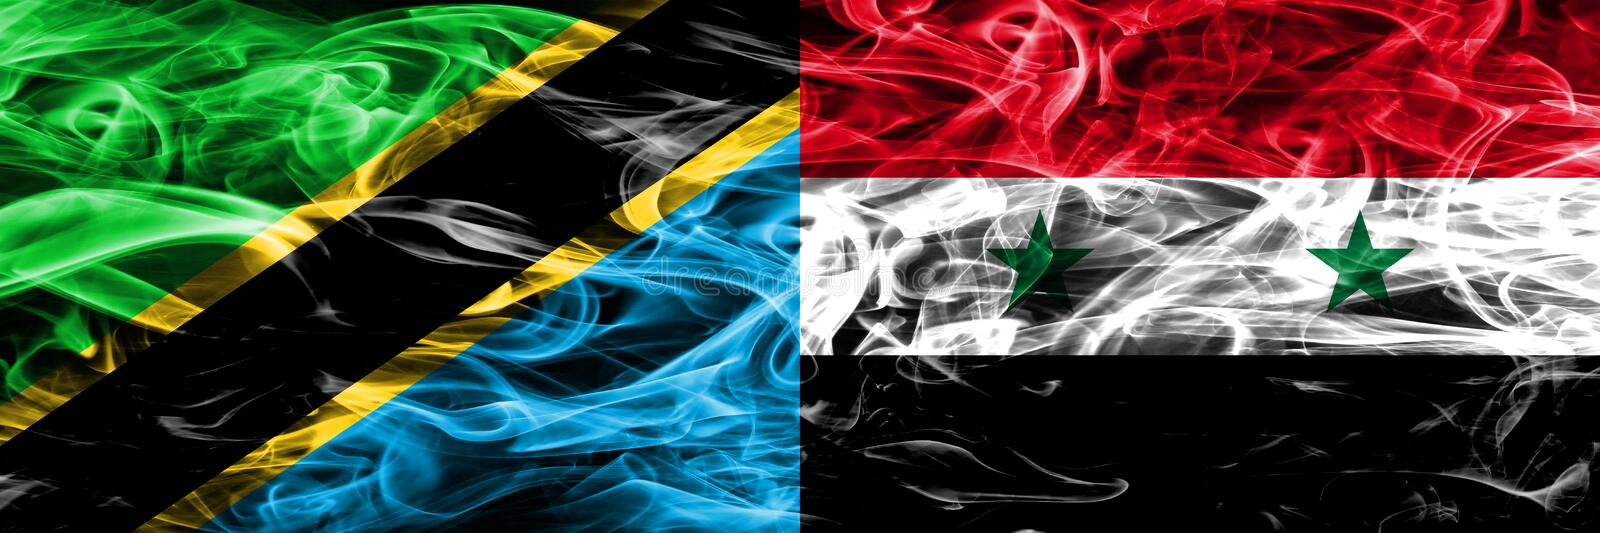 Tanzania vs Syria, Syrian smoke flags placed side by side. Thick colored silky smoke flags of Tanzanian and Syria, Syrian.  stock photo